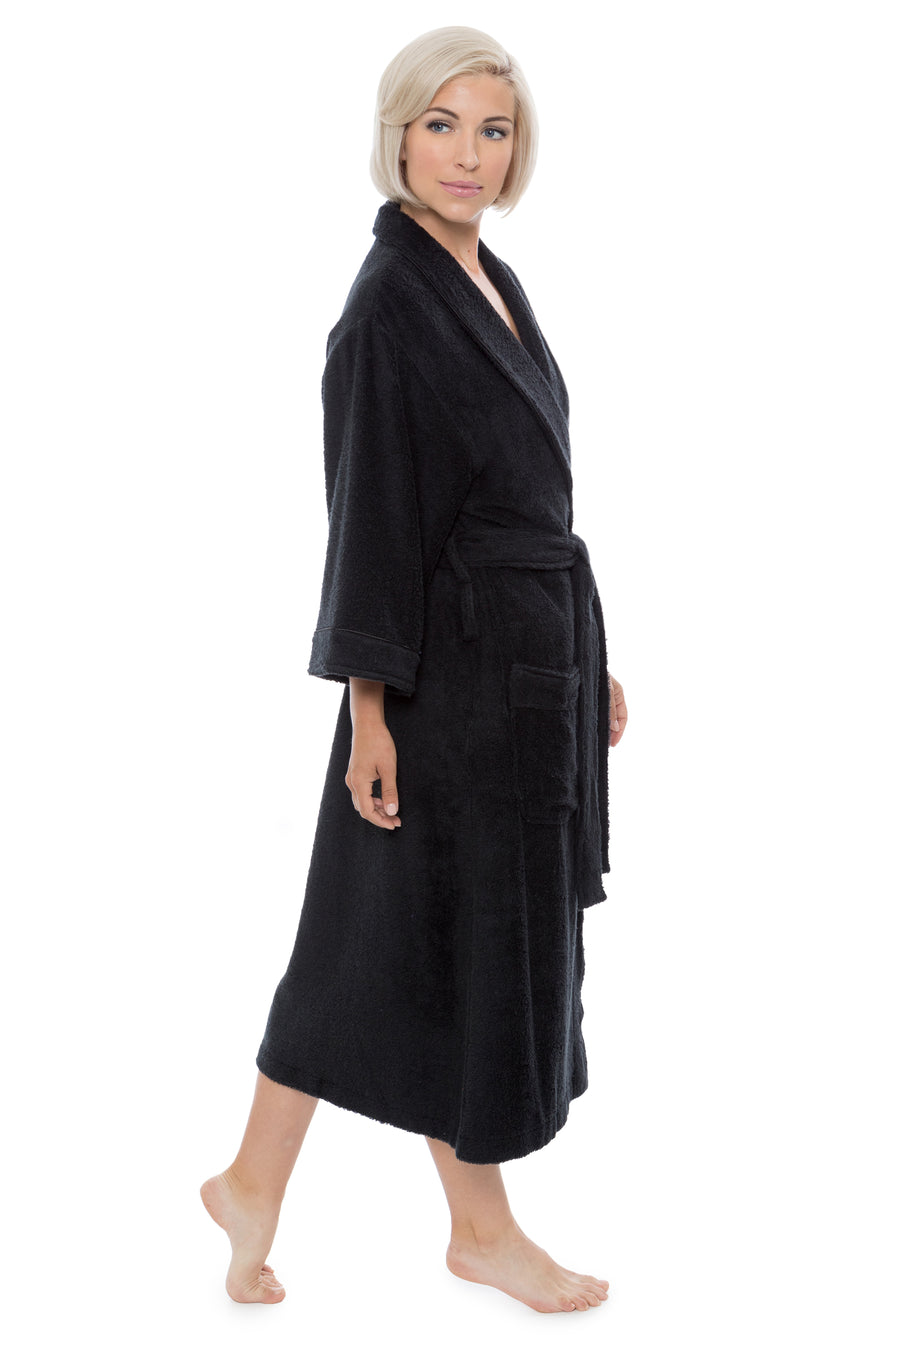 Ecovaganza - Women's Bamboo Viscose Terry Bath Robe - testing23451234 - Robes